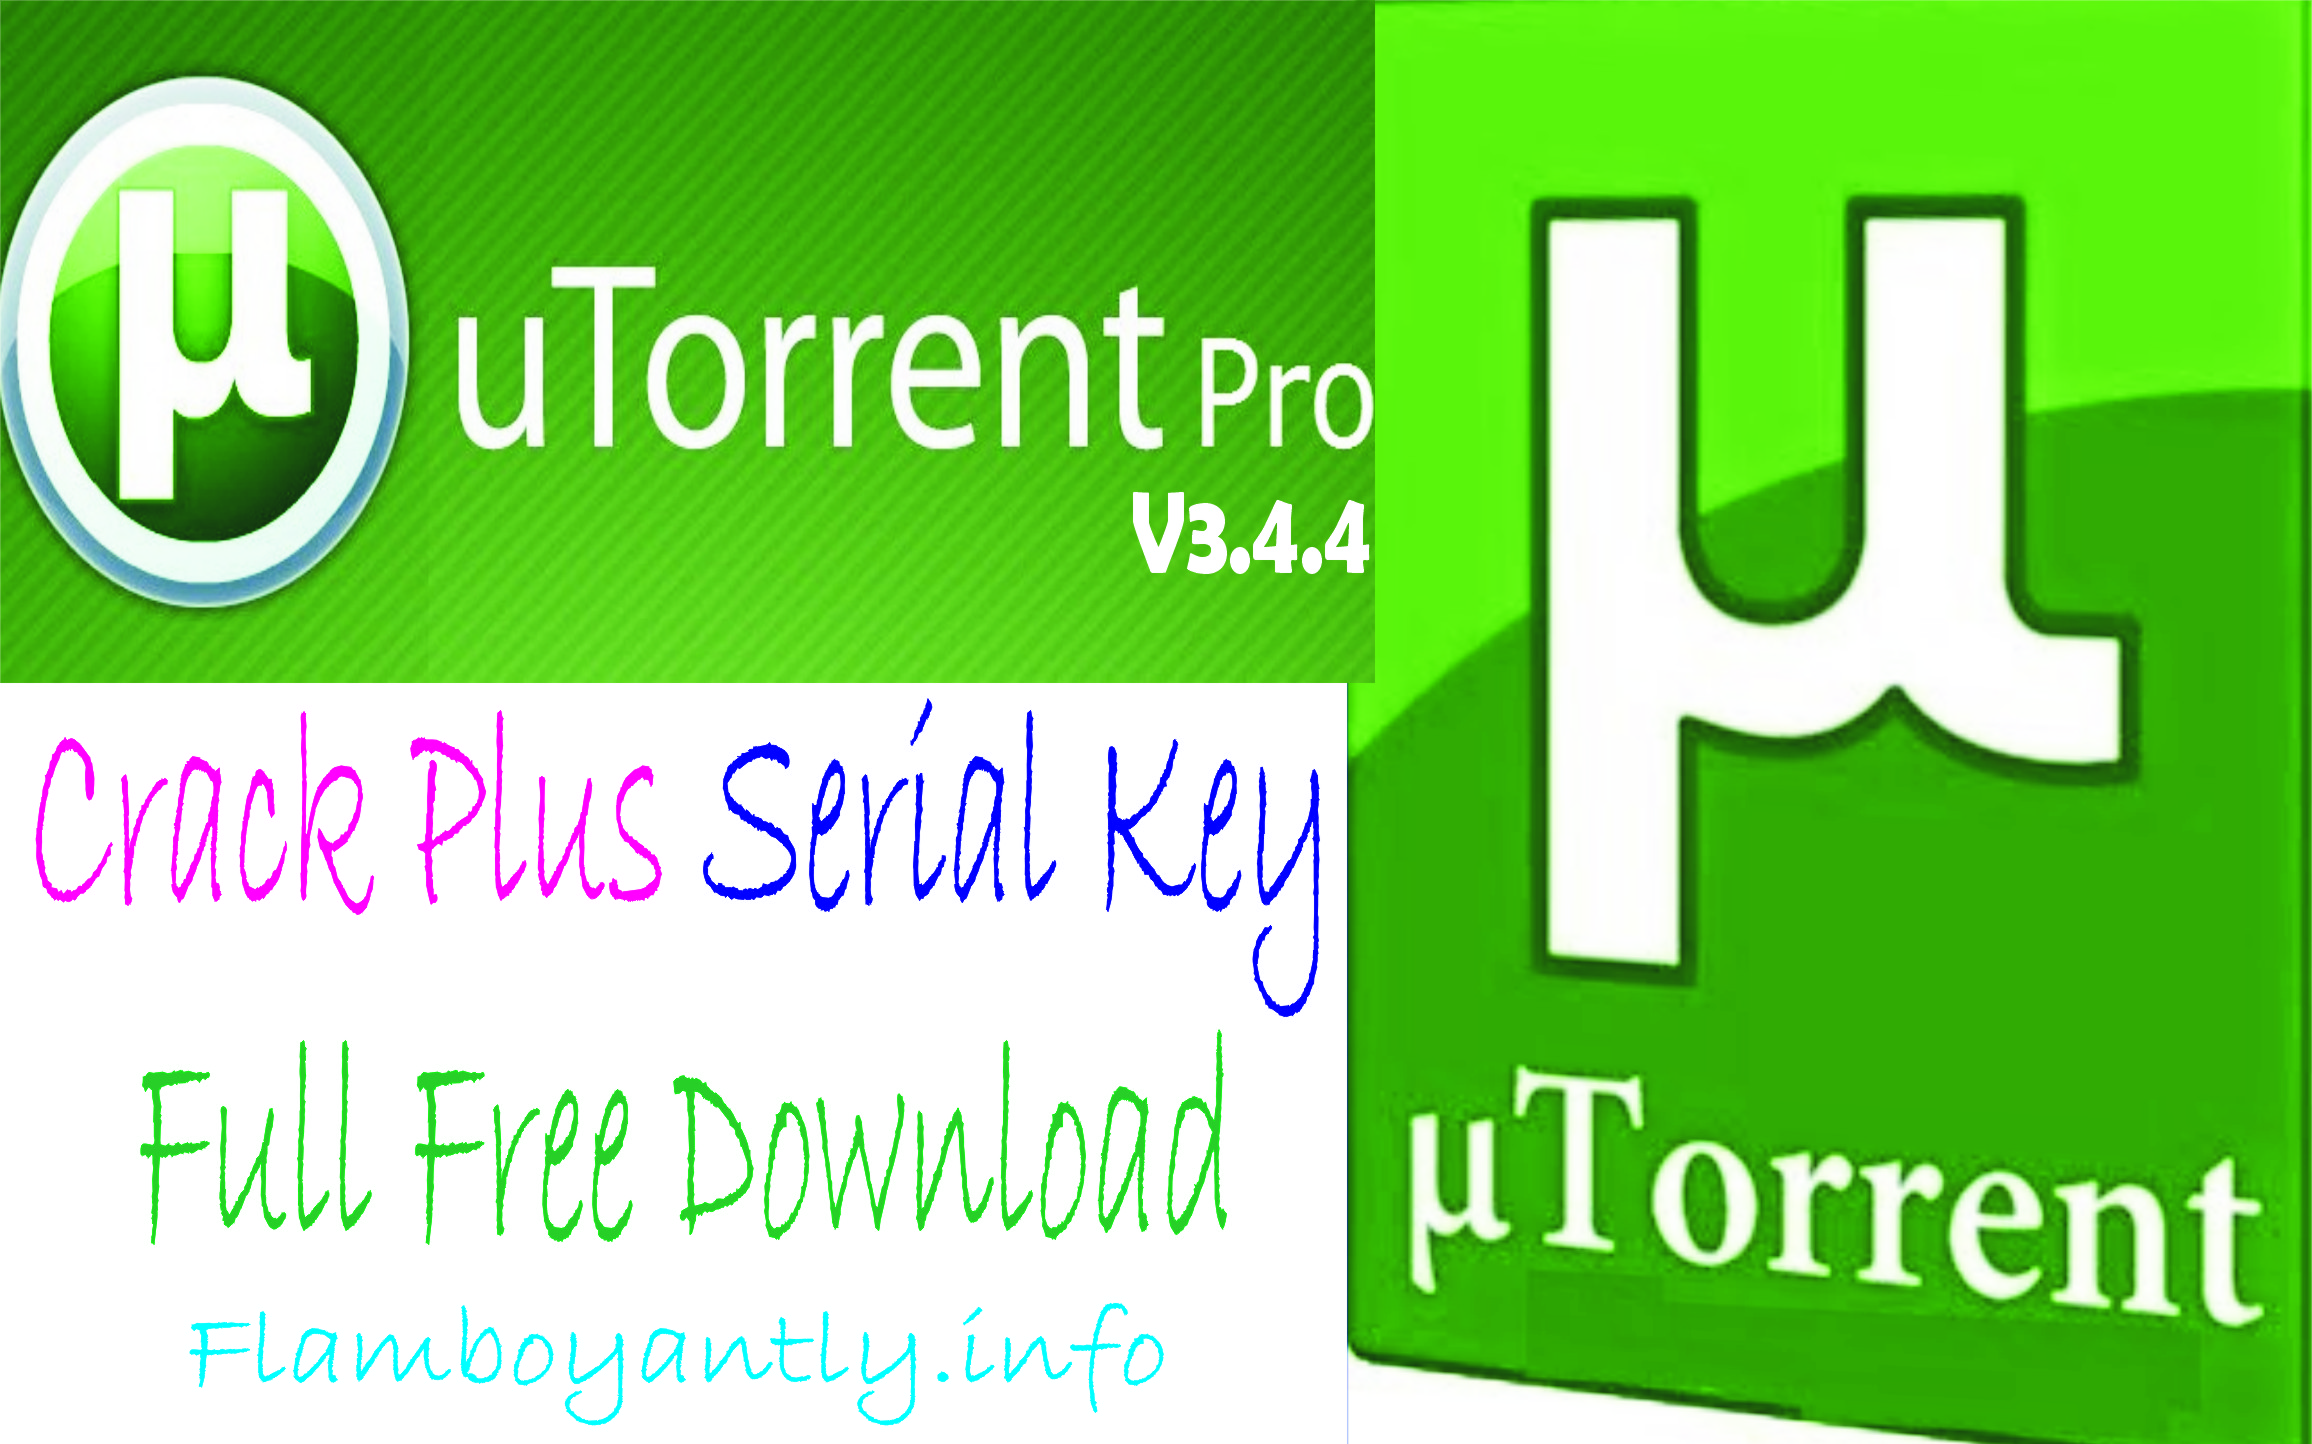 UTorrent Pro V3.4.4 Crack Plus Serial Key Full Free Download